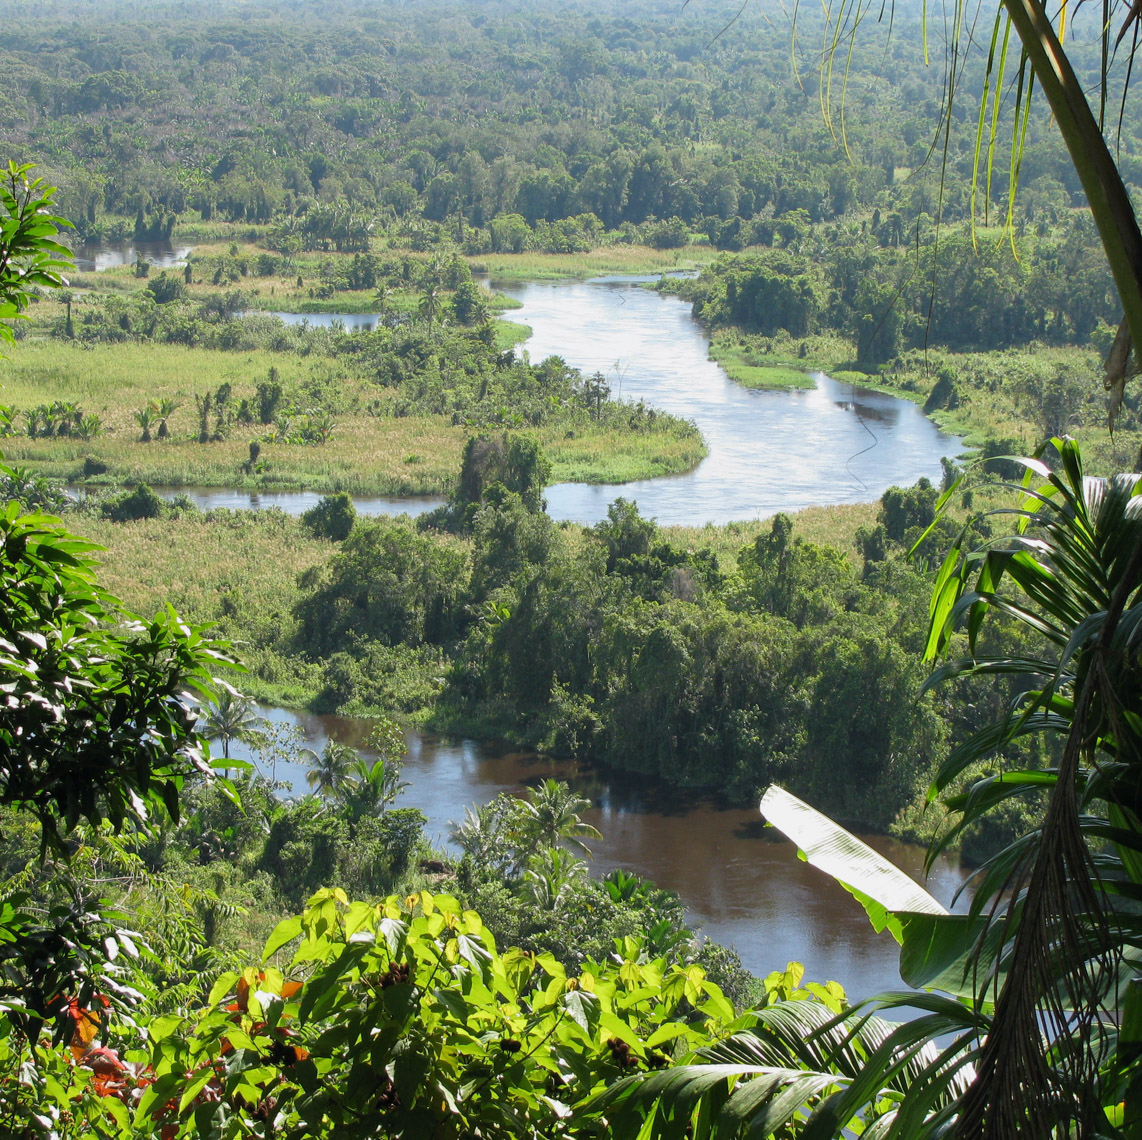 Musa River, Looking for Great New Guinea Art